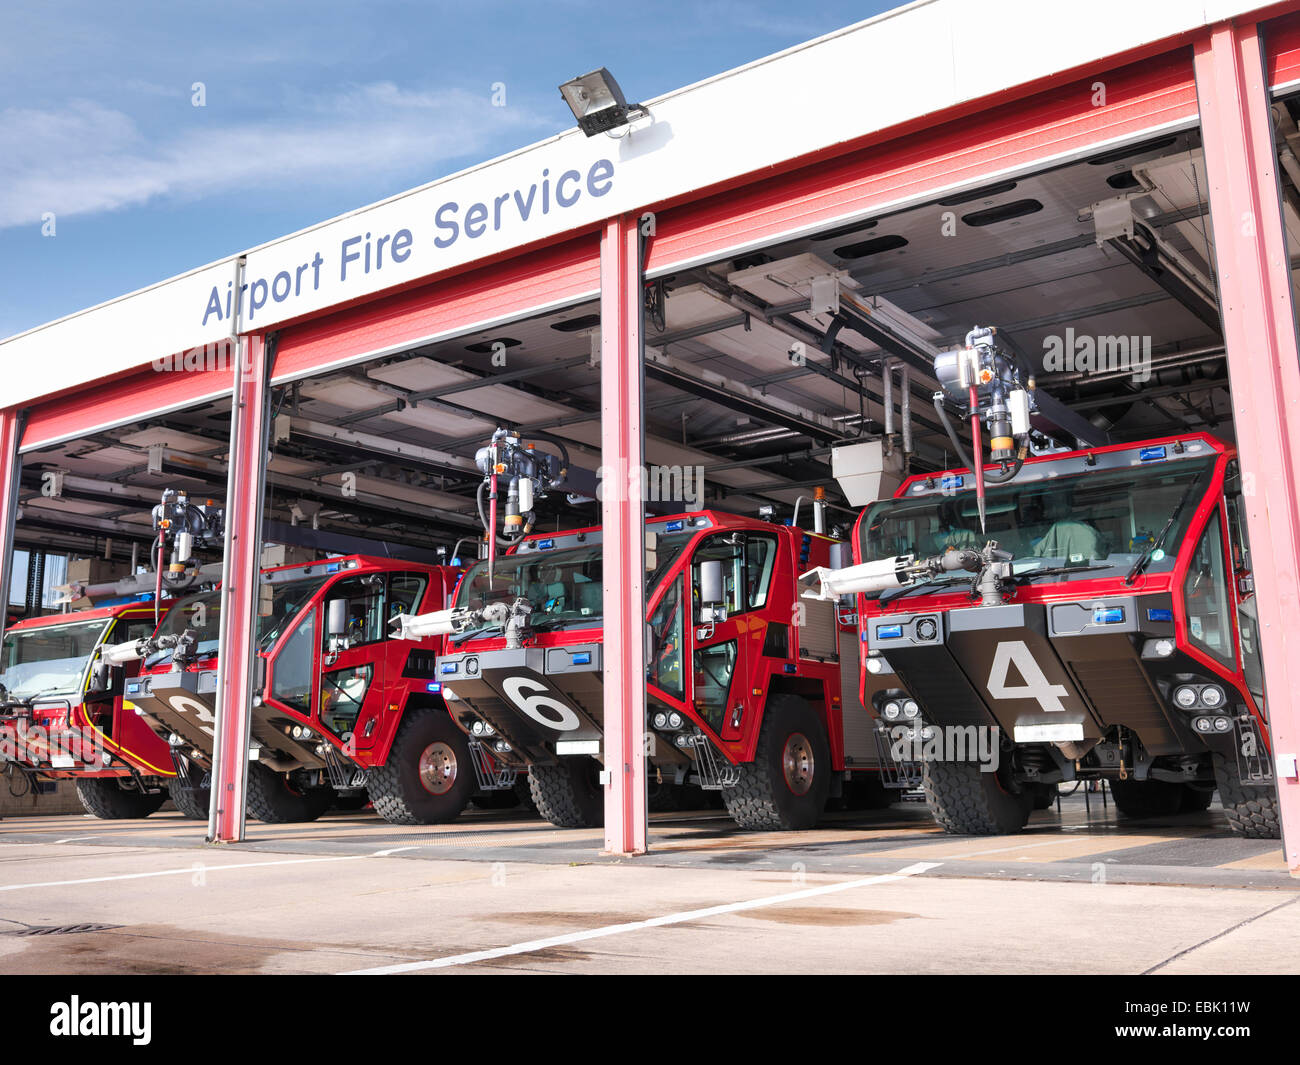 Fire engines in airport fire station - Stock Image